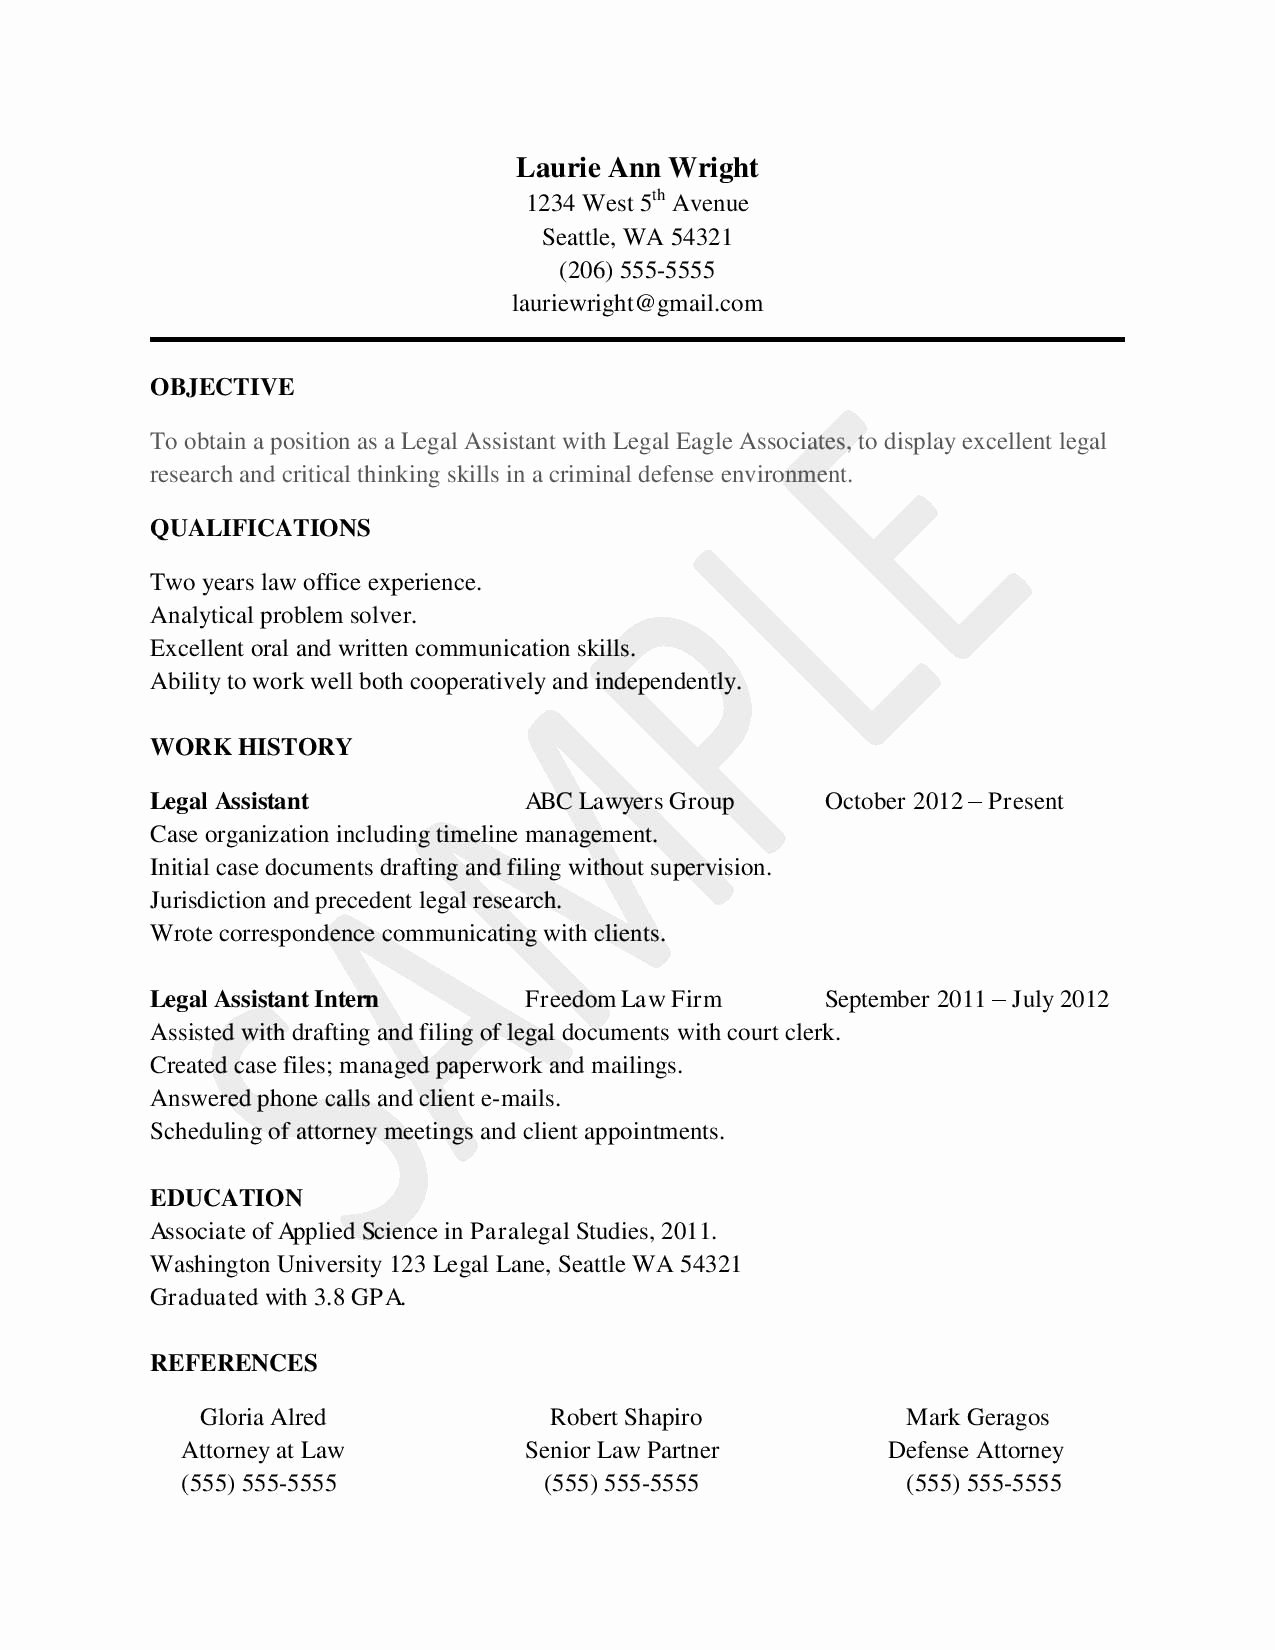 Entry Level Paralegal Resume New Sample Resume for Legal assistants Legal assistant Info